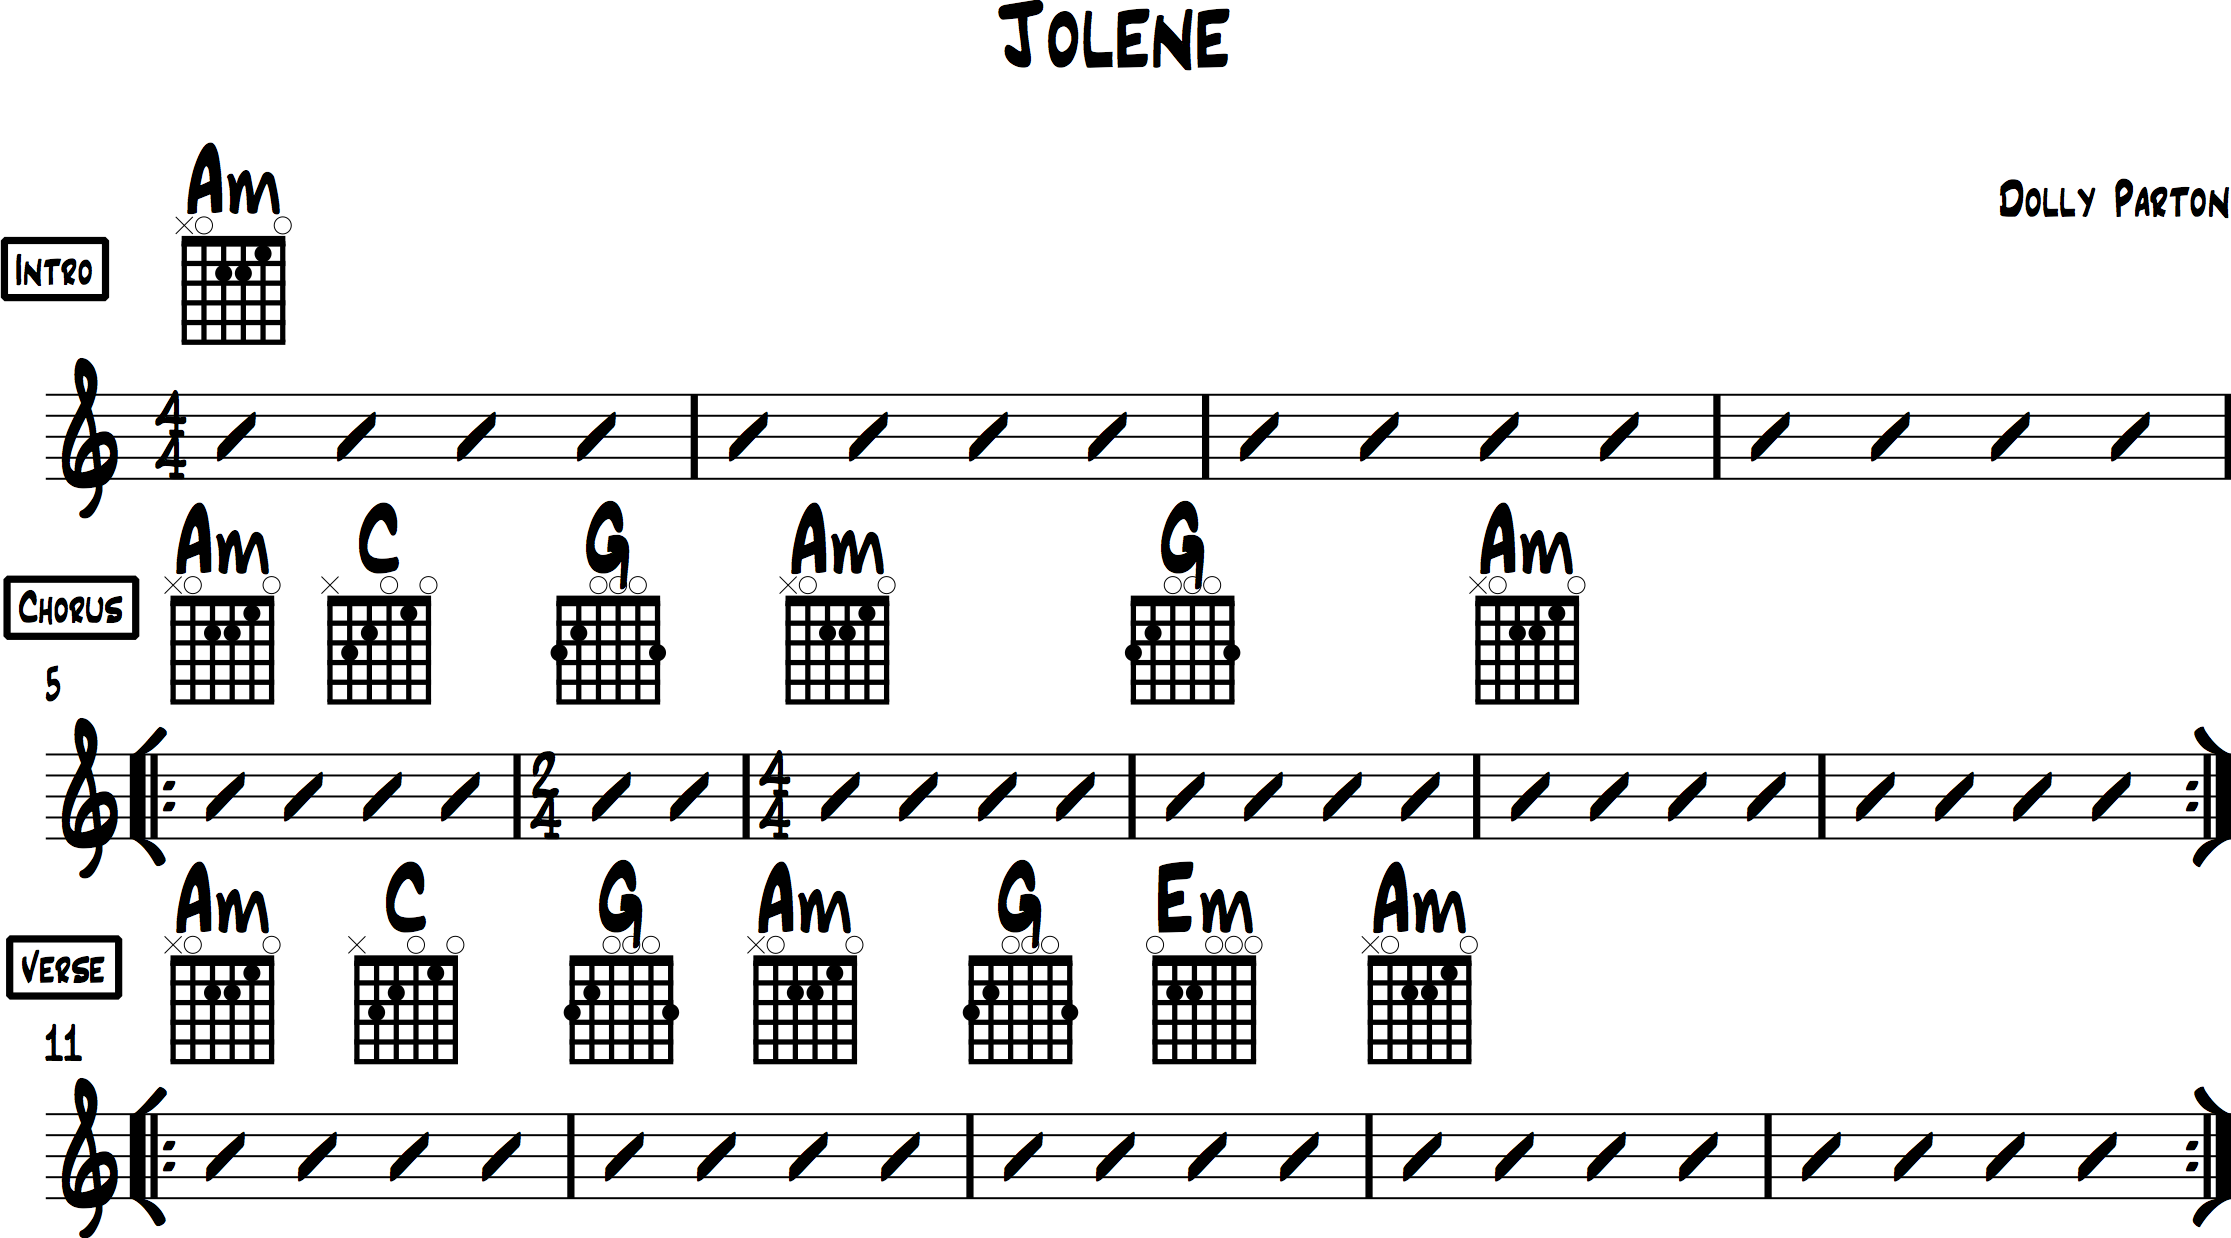 Jolene Chords For Acoustic Guitar Dolly Parton